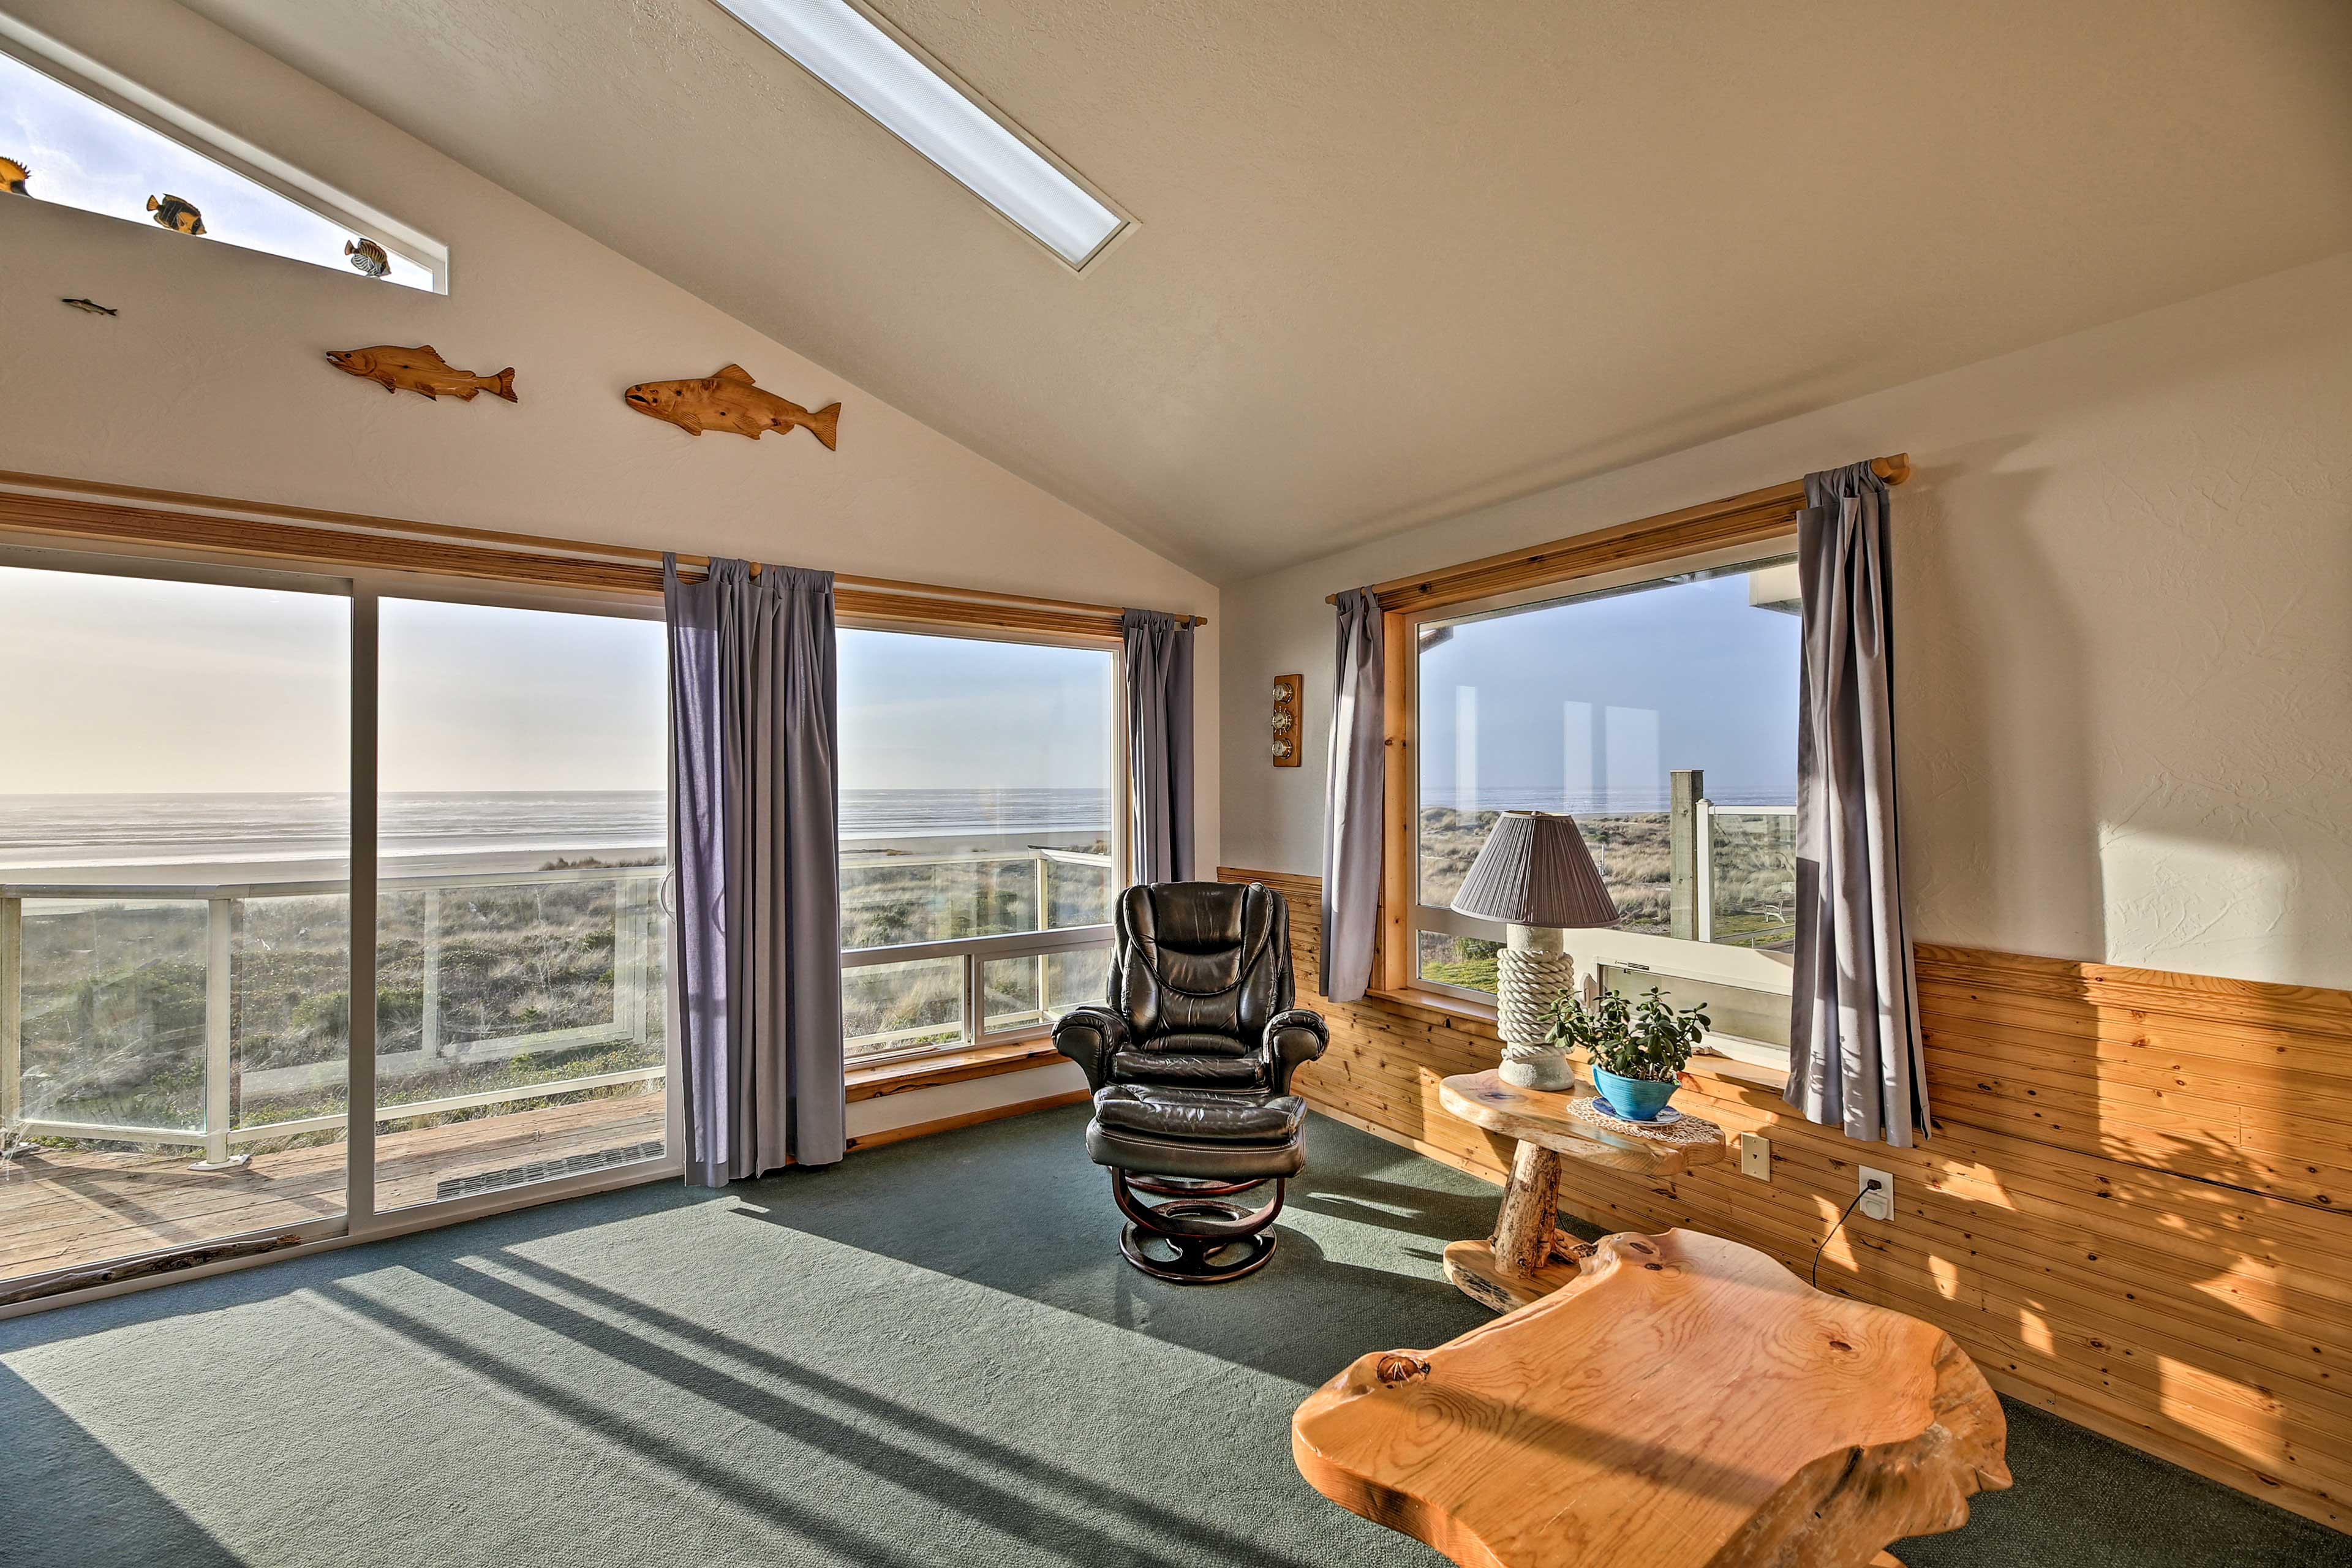 View the Pacific Ocean through the large windows throughout this home.